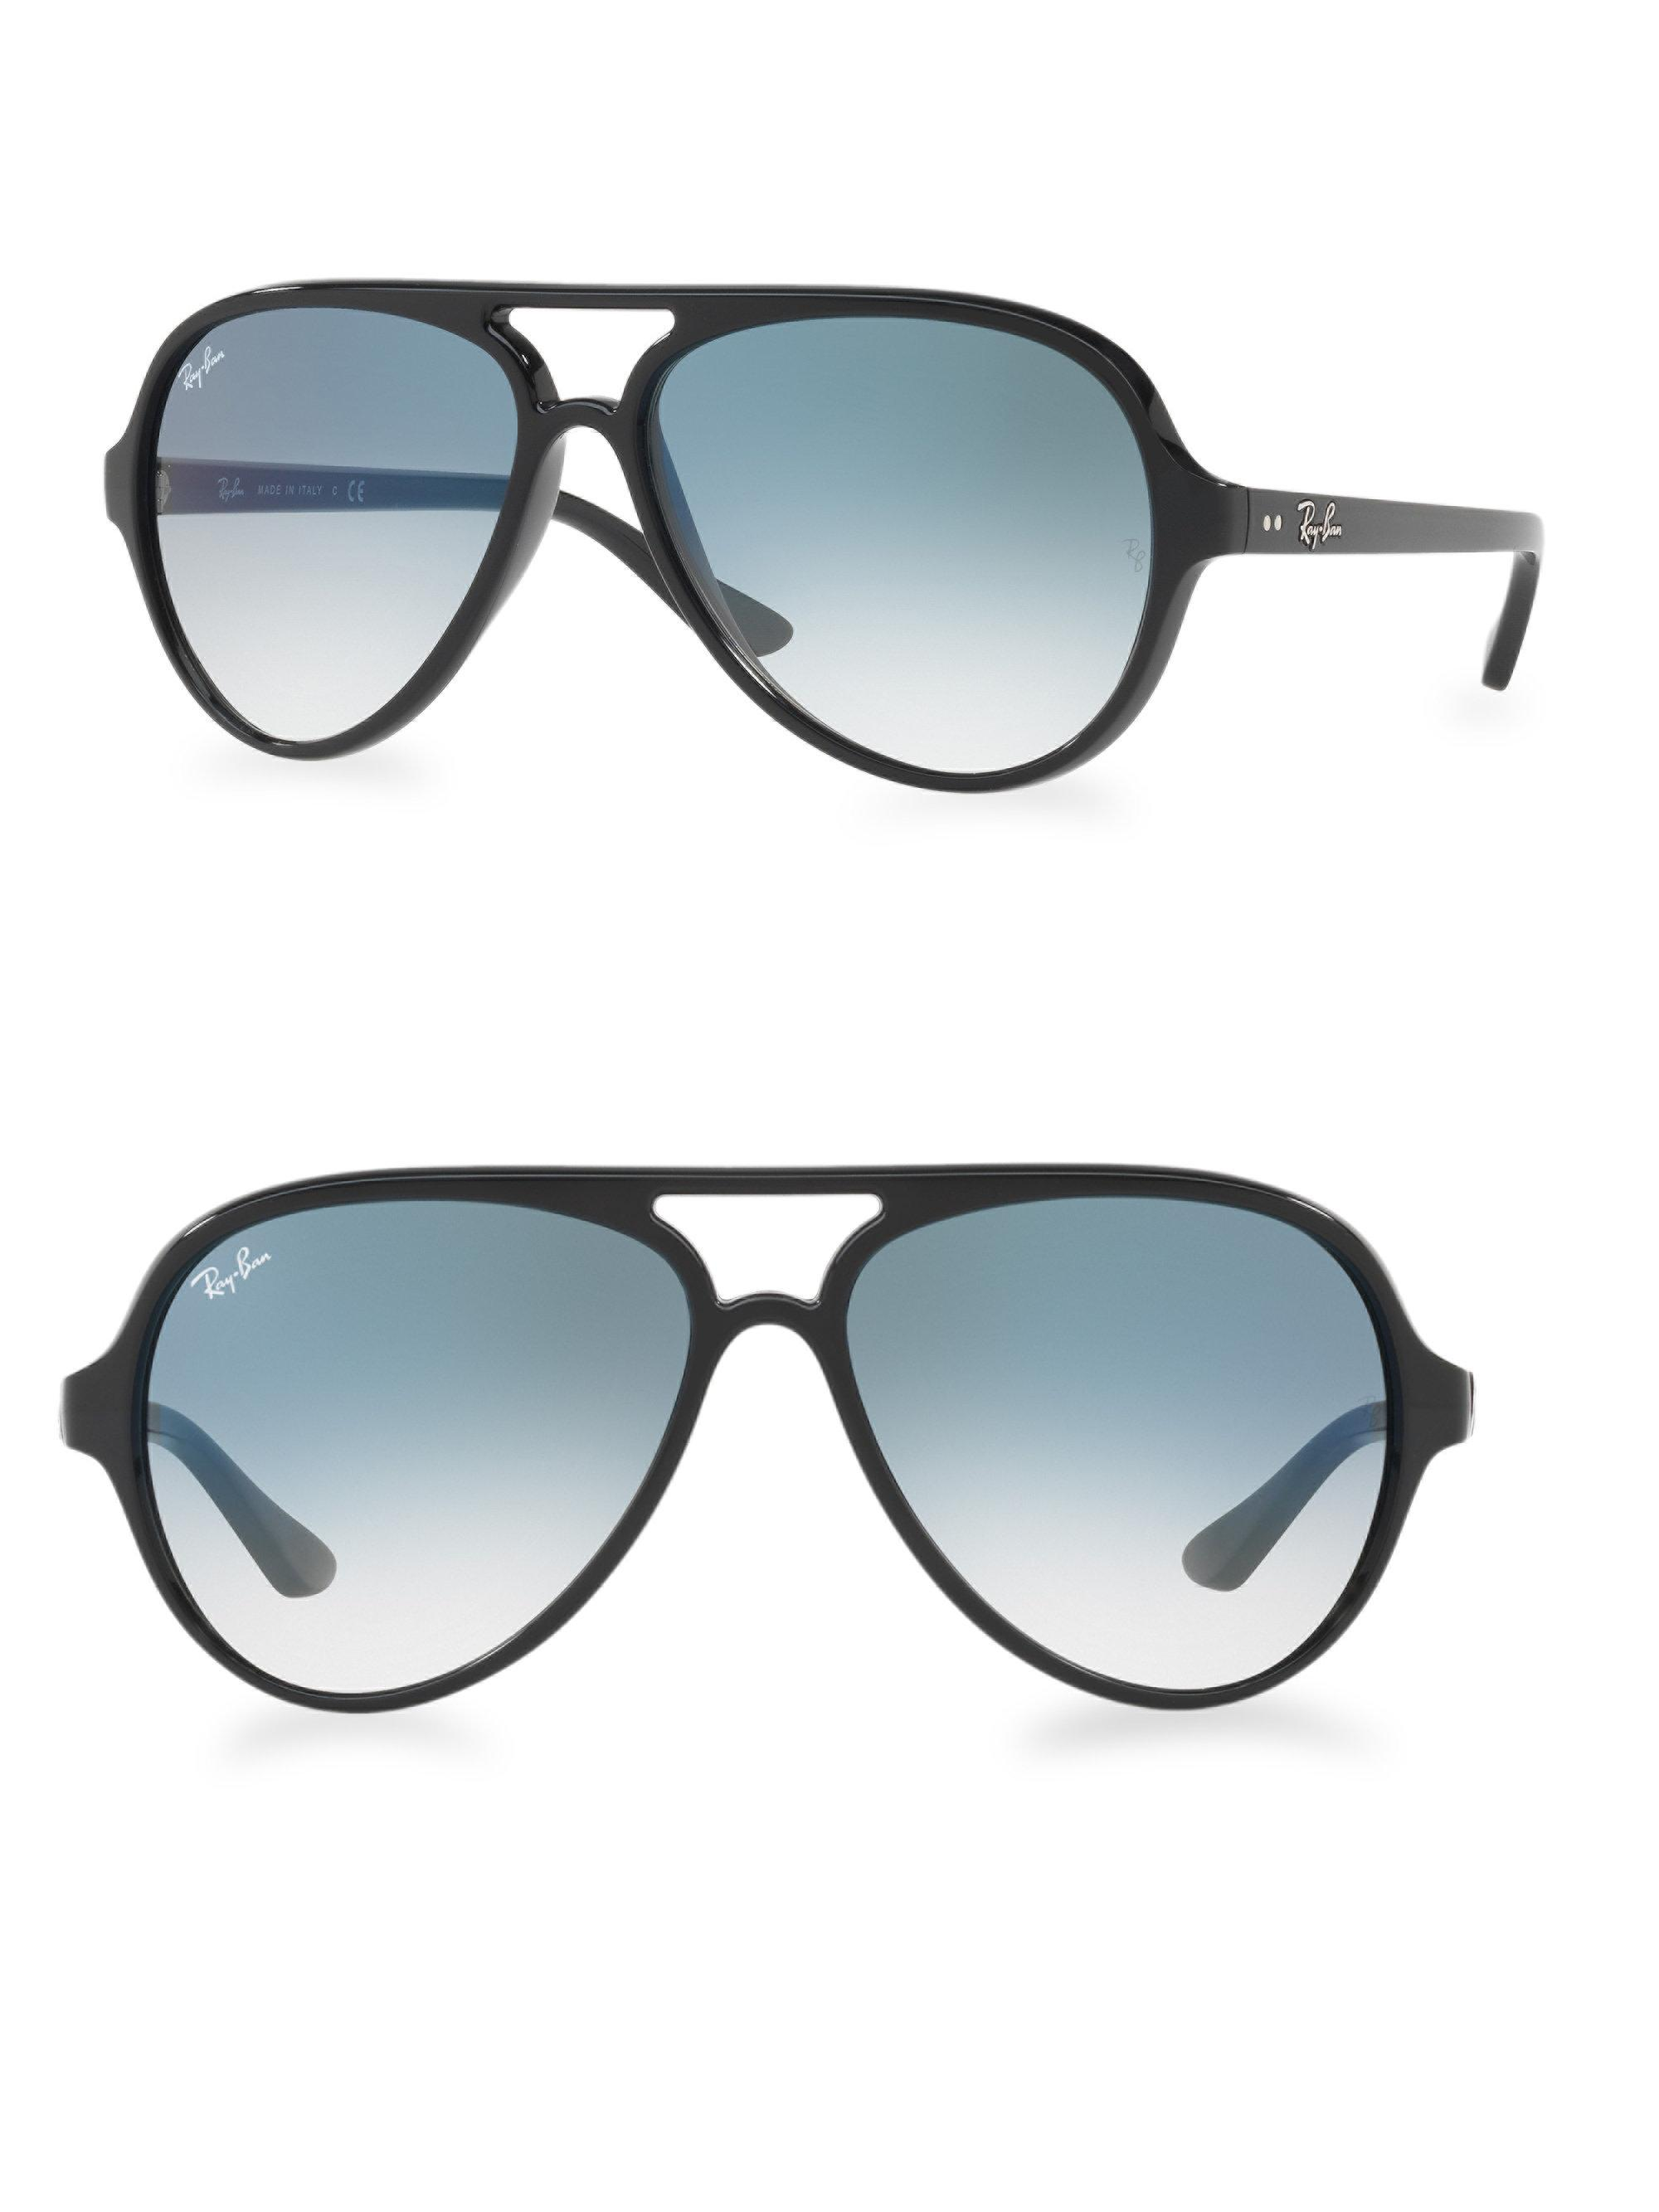 32b830dc3d6 Ray-Ban Iconic Cats 5000 Aviator Sunglasses in Black - Lyst